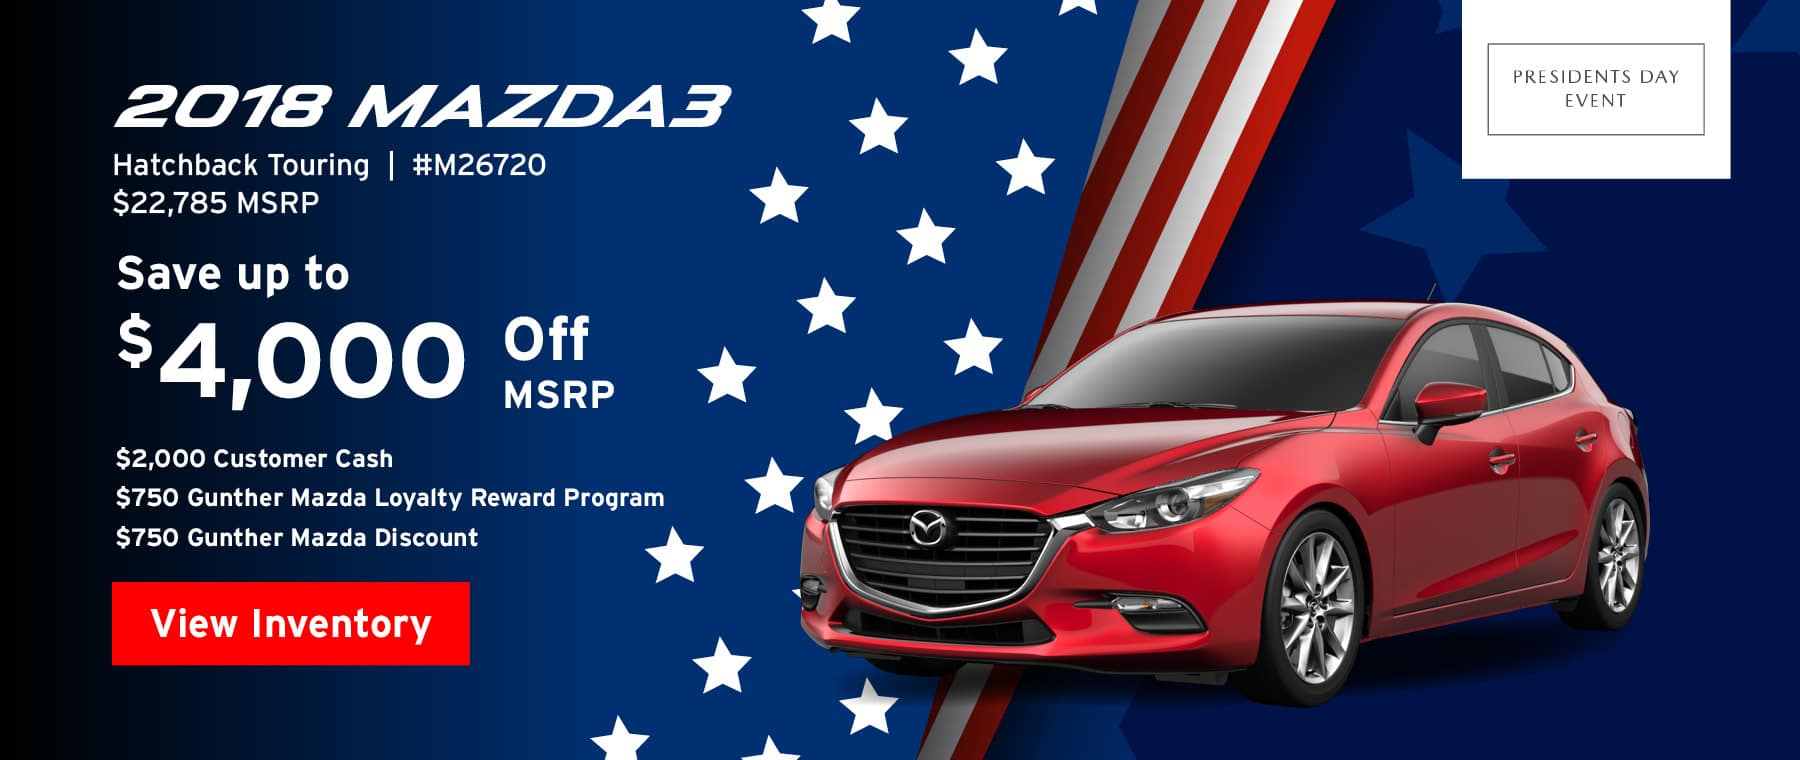 Save up to $4,000 off msrp on the 2018 Mazda3 Hatchback touring.